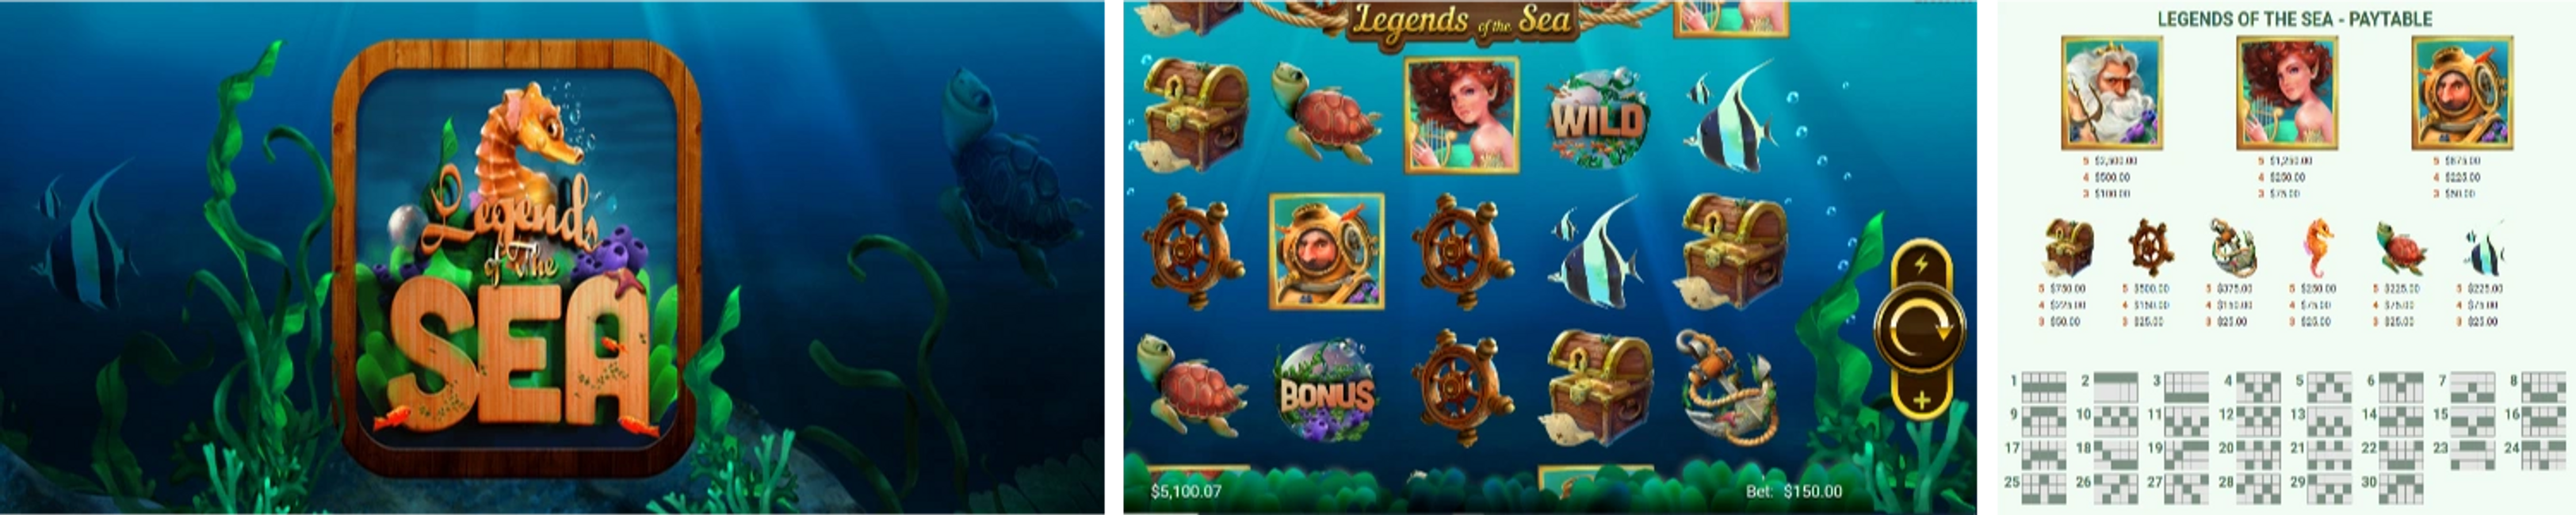 Legends of the Sea Online Video Slot Review